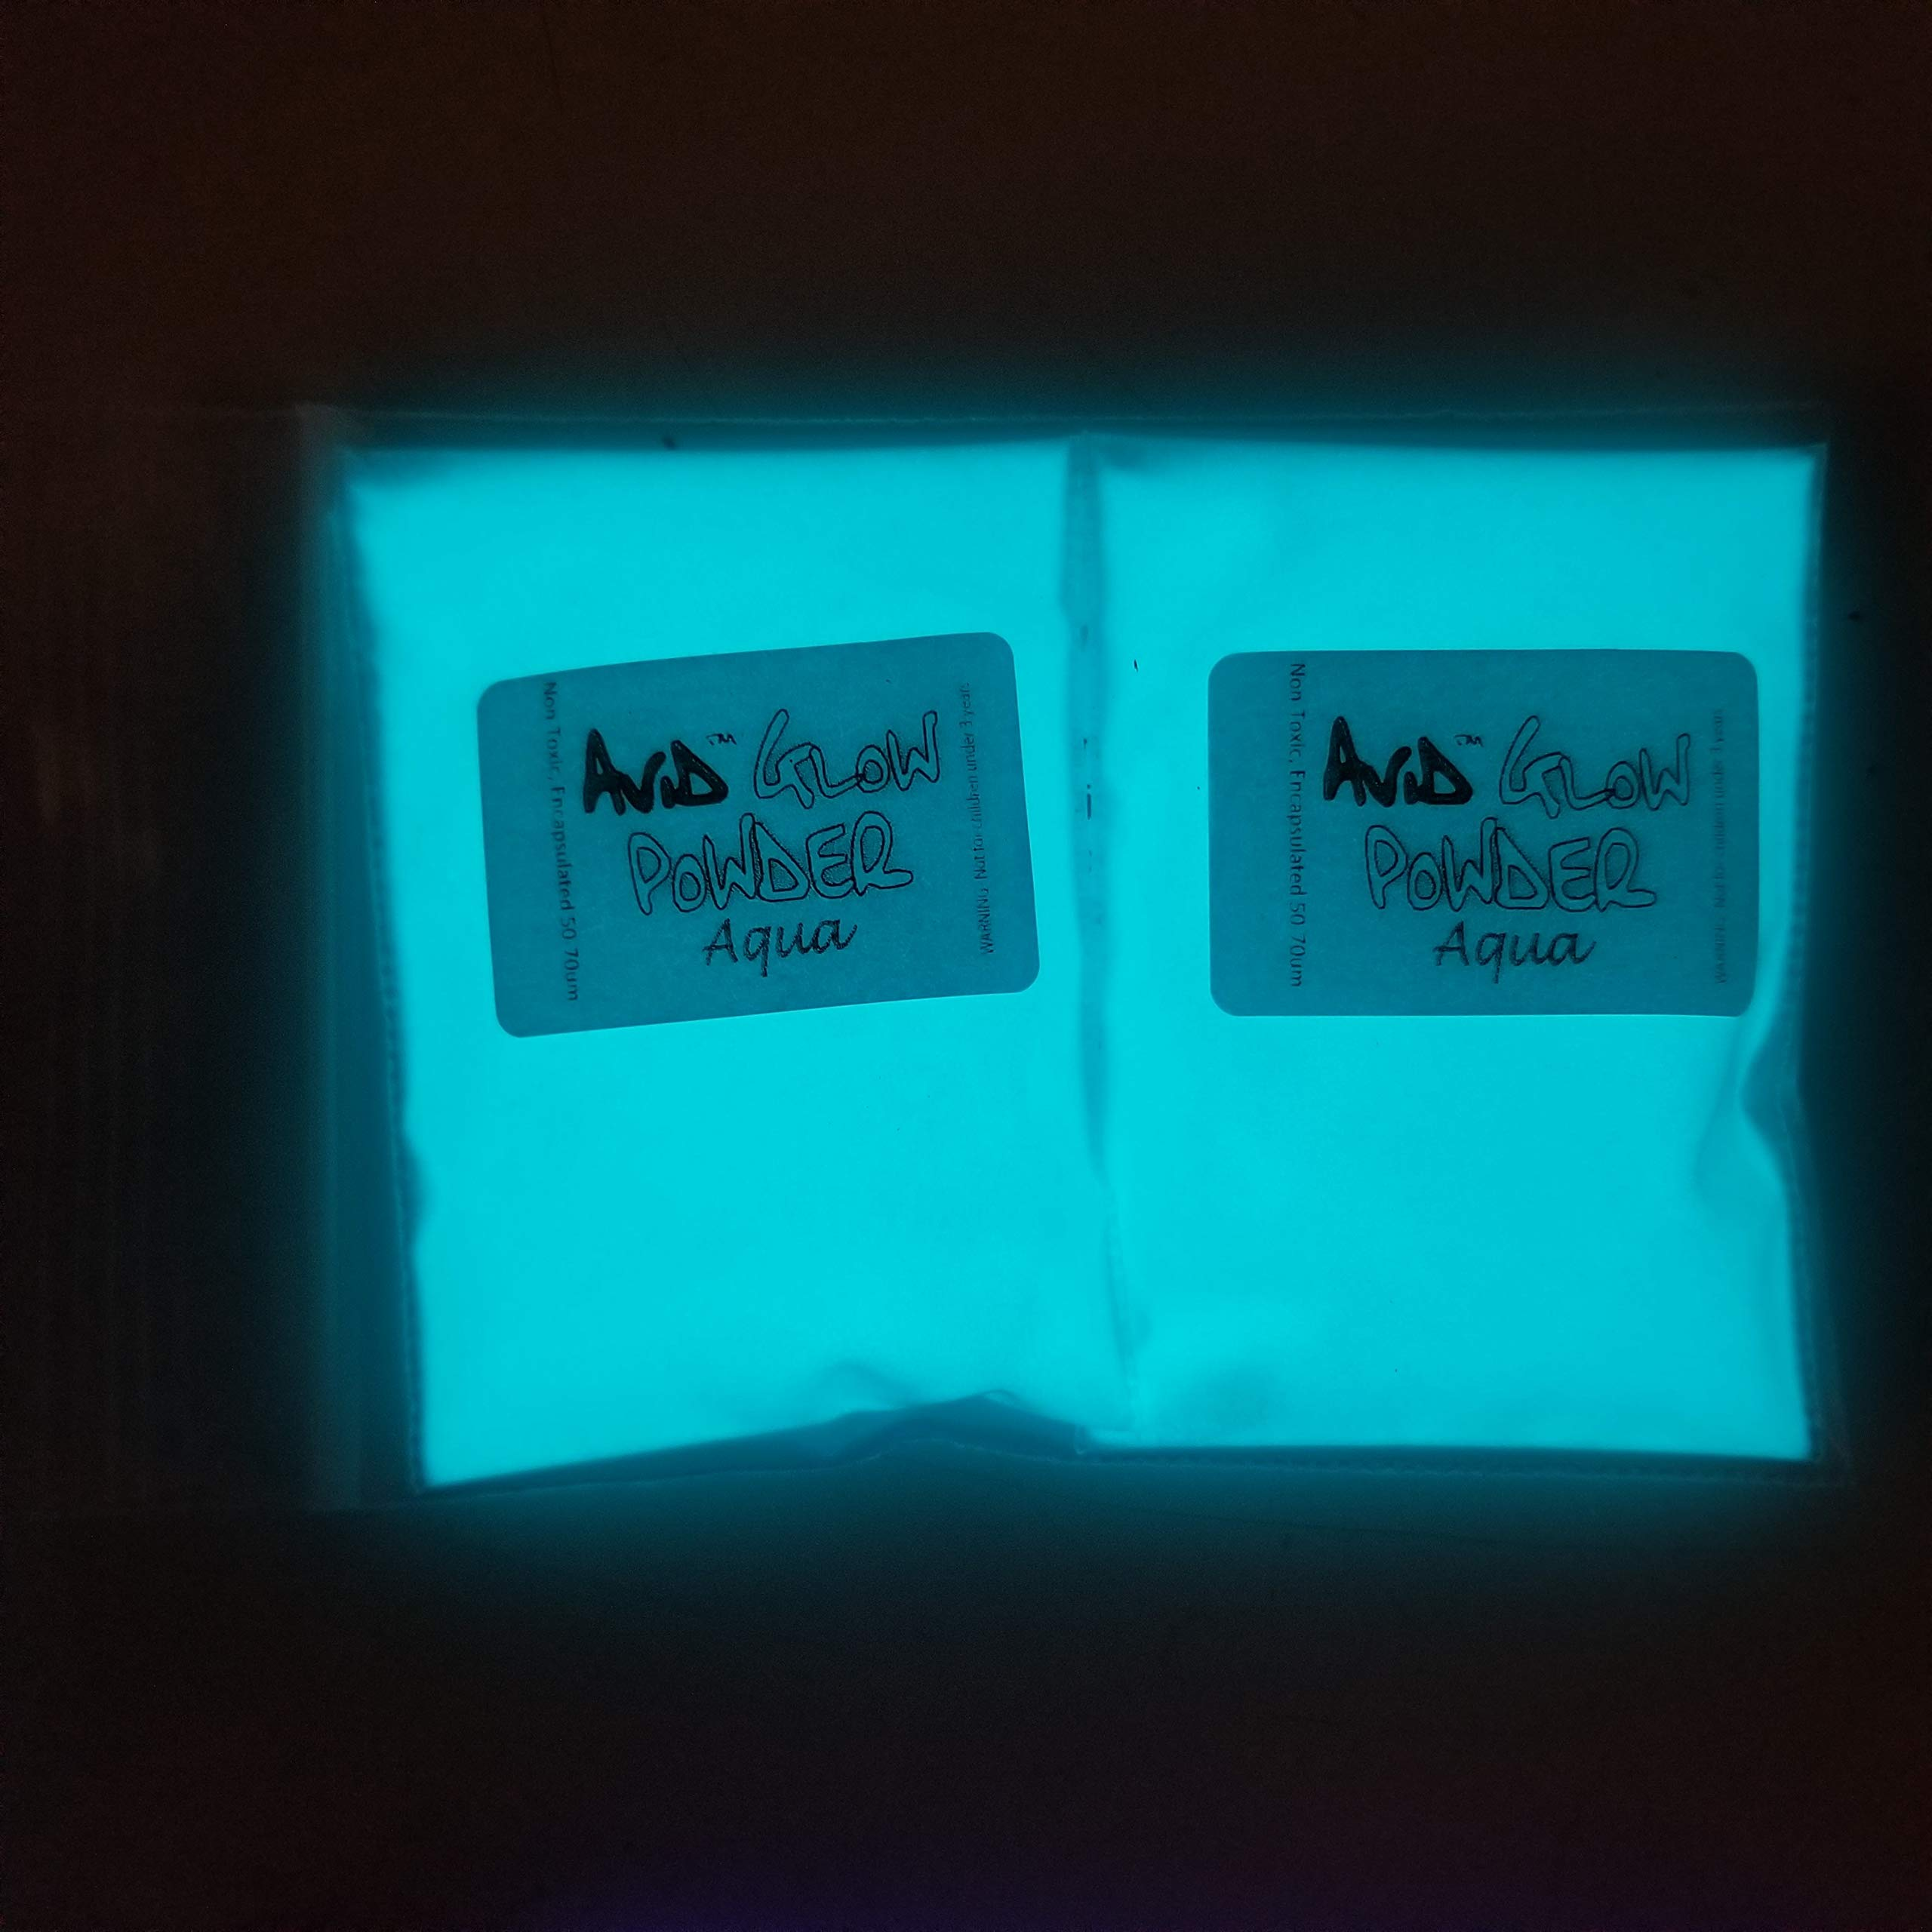 Glow in The Dark Pigment Powder; Neutral in Daylight, Aqua Glow in Dark; 2.9oz (80g); for Resin, Slime, Nail Polish, Paints (2 Pack of 40g Each)